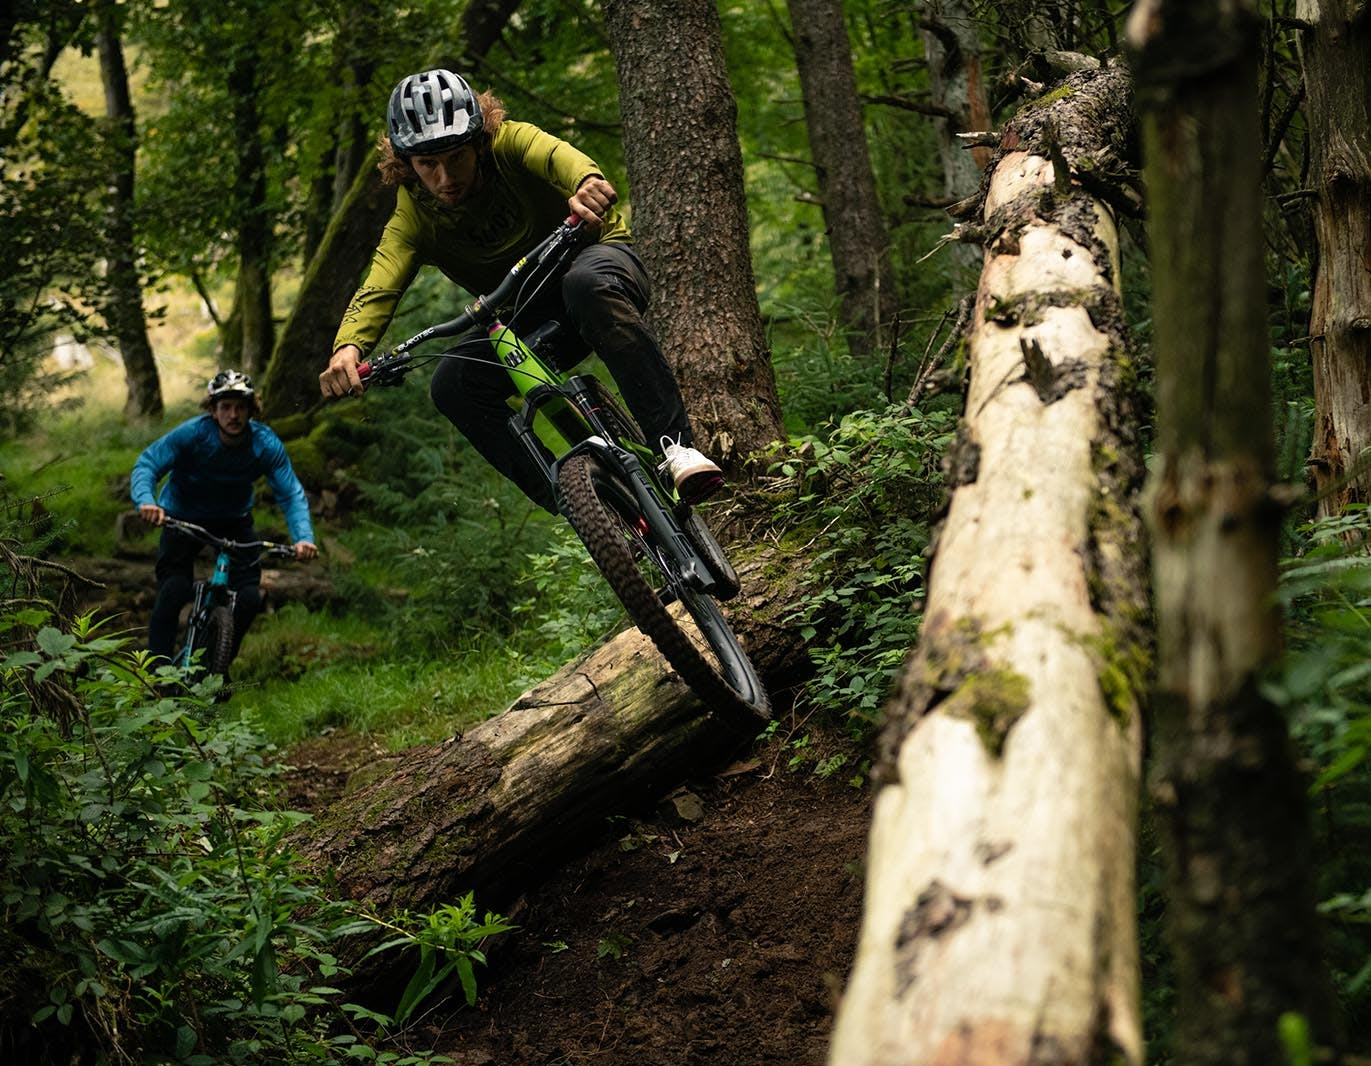 Two mountain bikers in woods on 27.5 Nomads